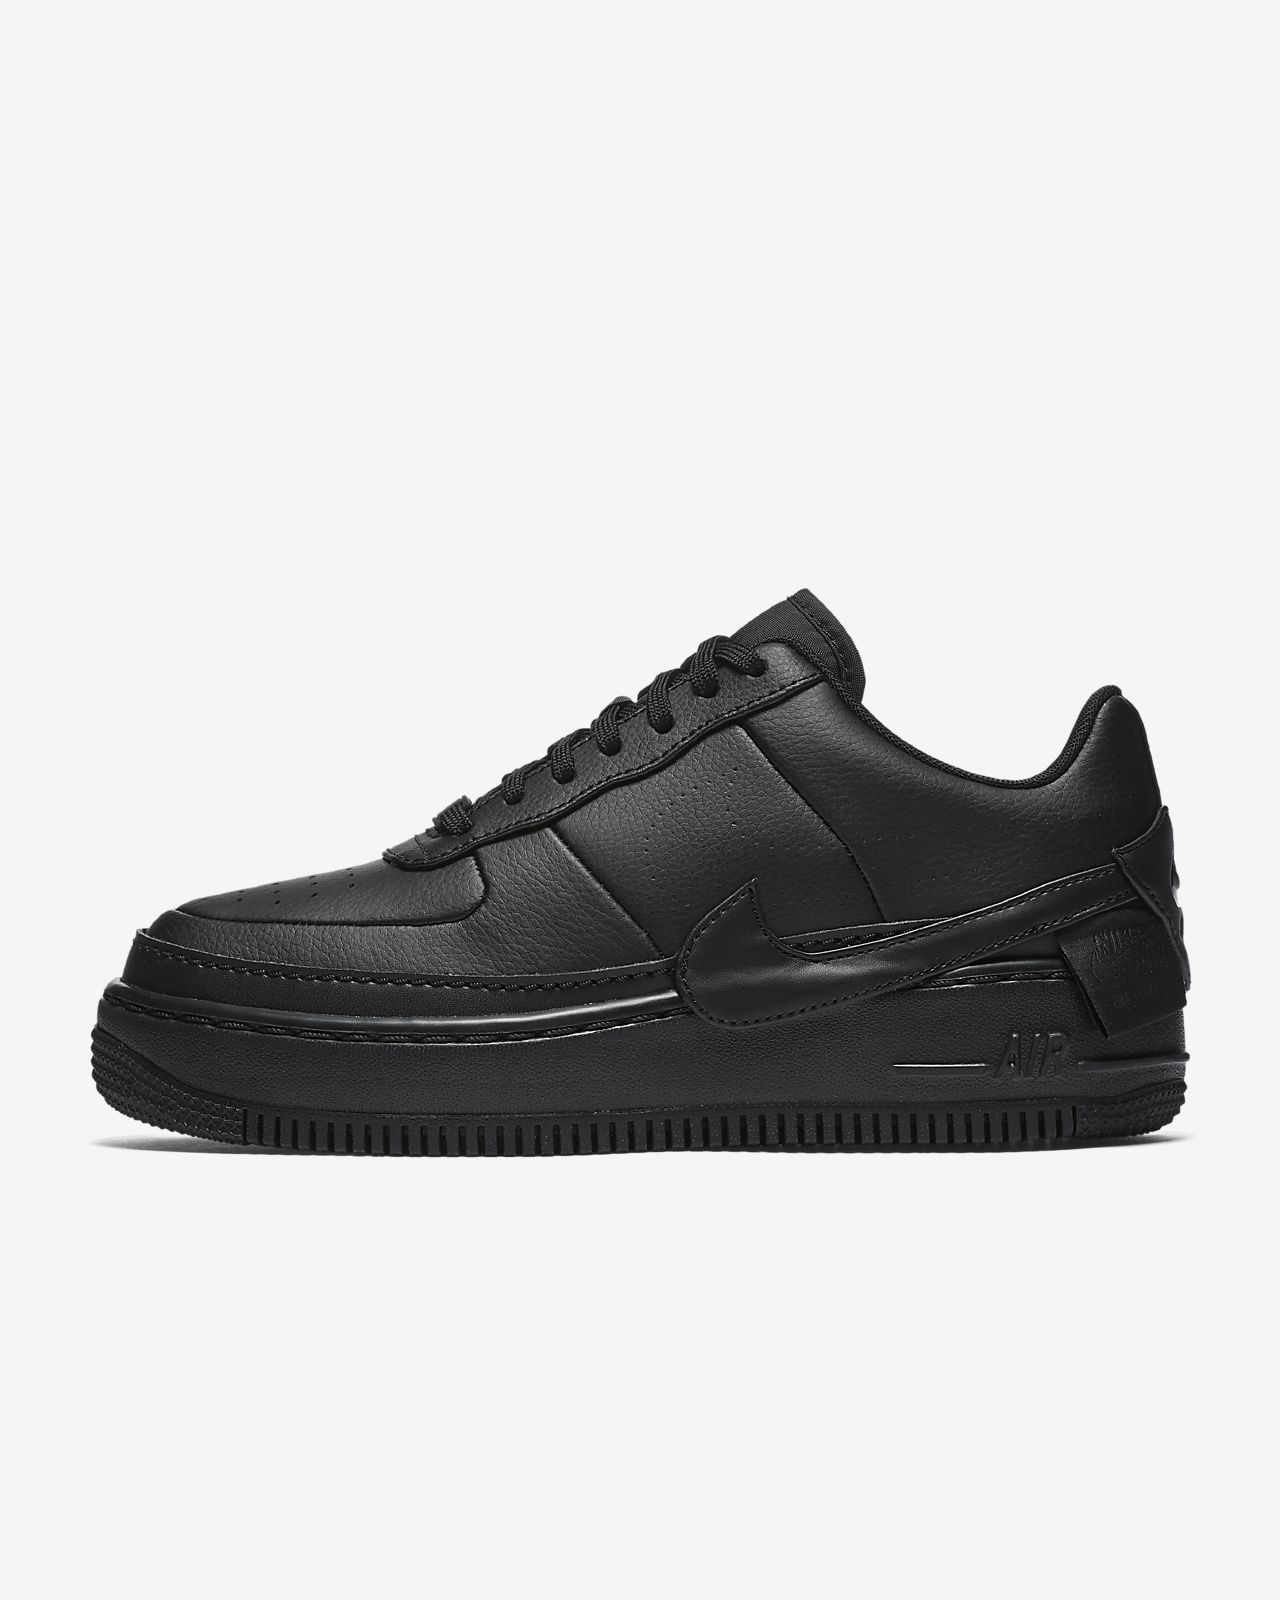 the best attitude c456f 6952f ... Chaussure Nike Air Force 1 Jester XX pour Femme